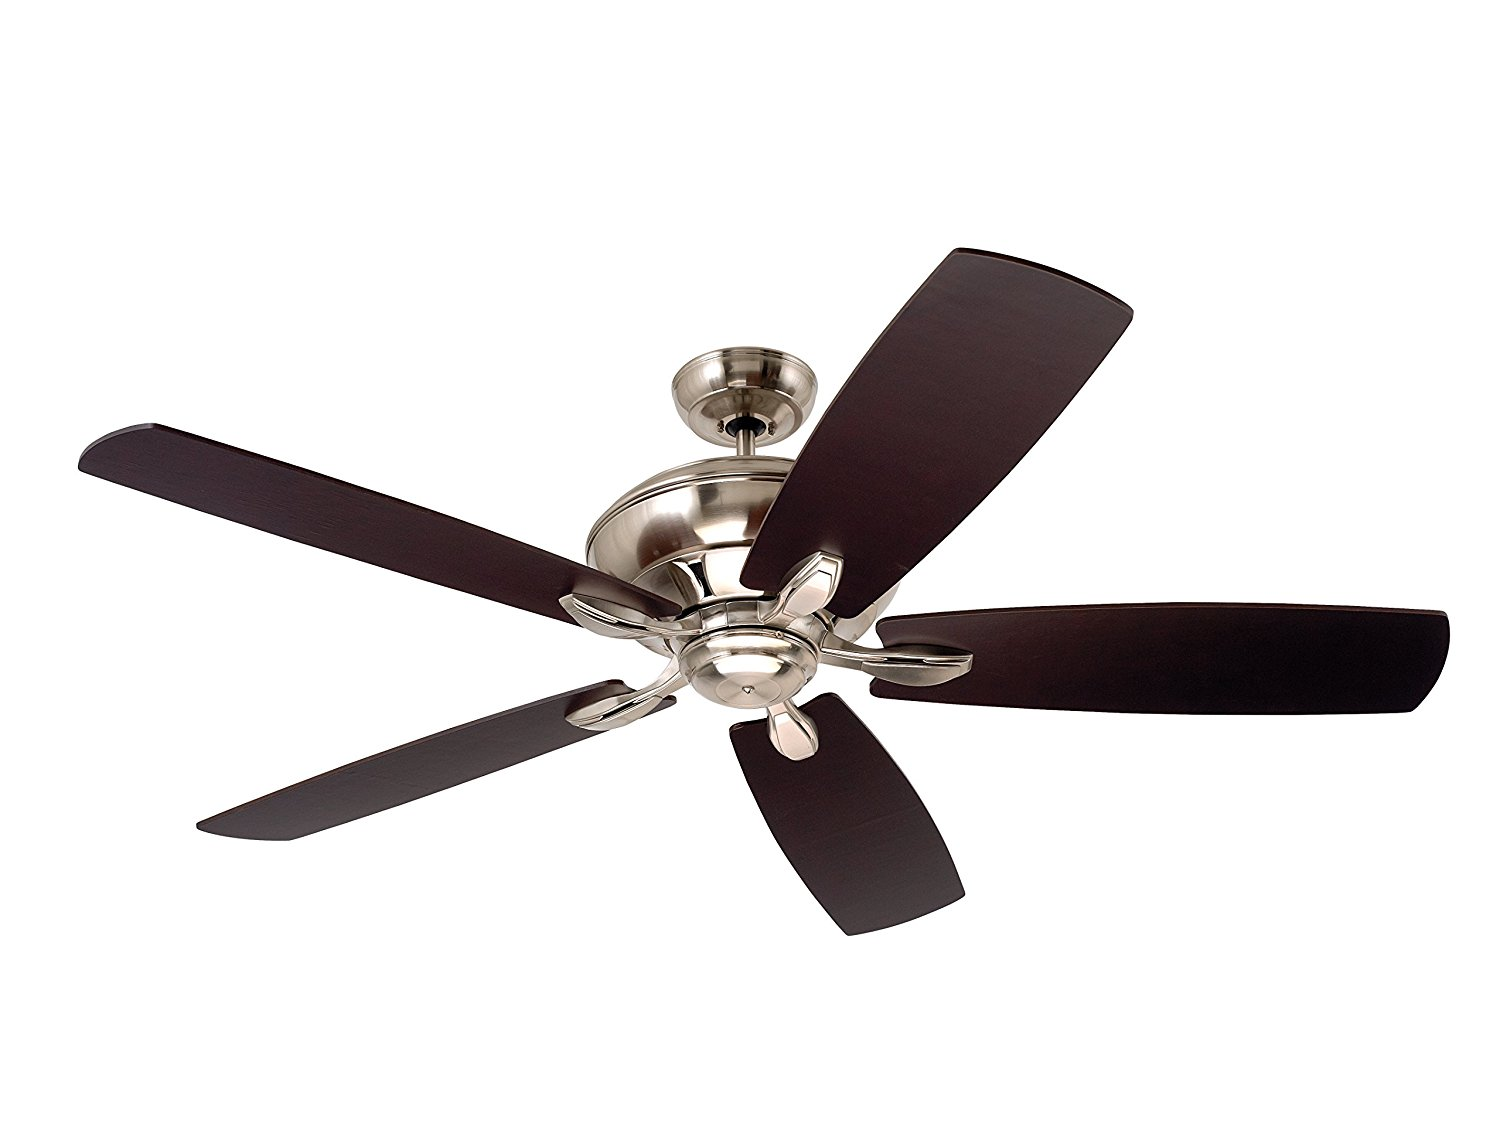 Emerson Ceiling Fans CF790BS Crofton Ceiling Fan with Wall Control and 58-inch Blades, Brushed Steel Finish